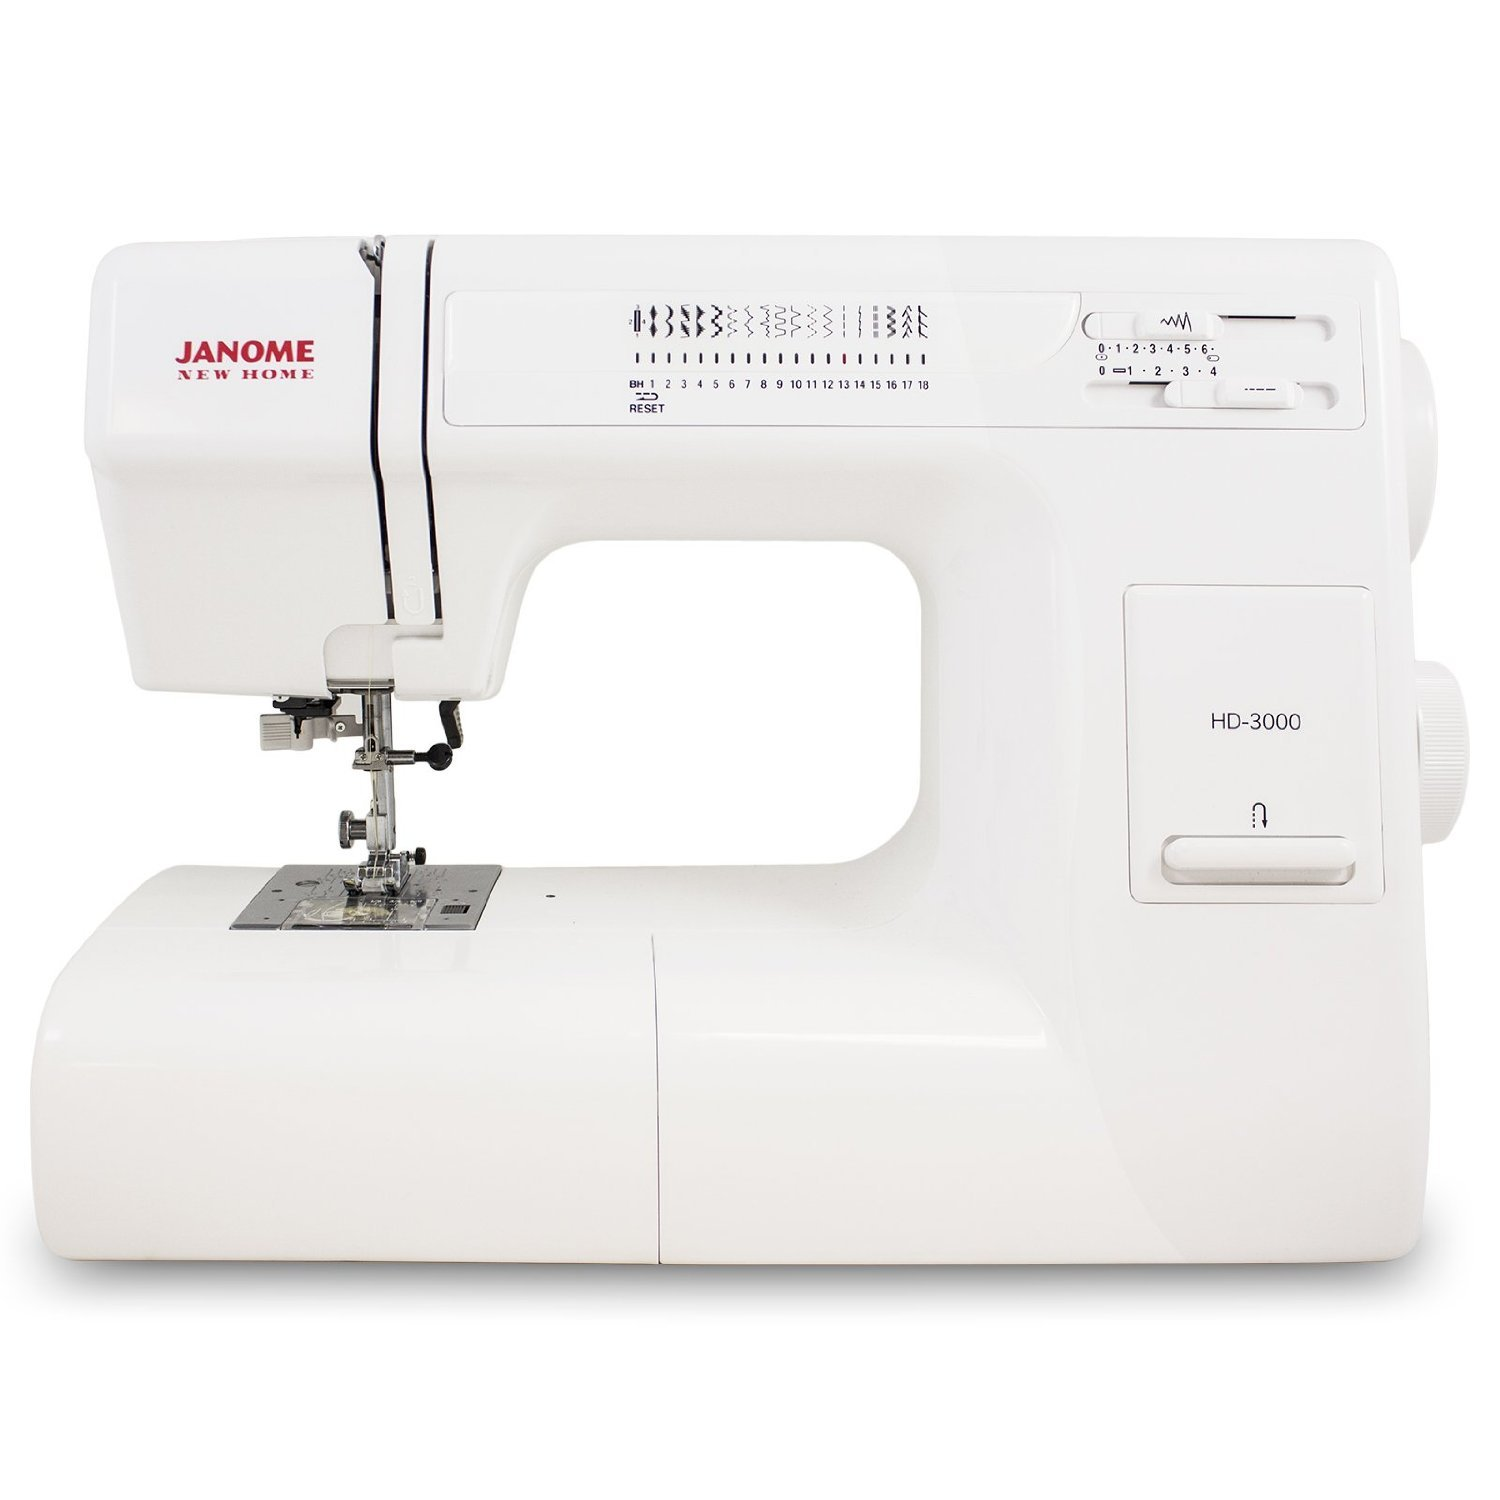 janome-hd3000-heavy-duty-sewing-machine-reivew-3